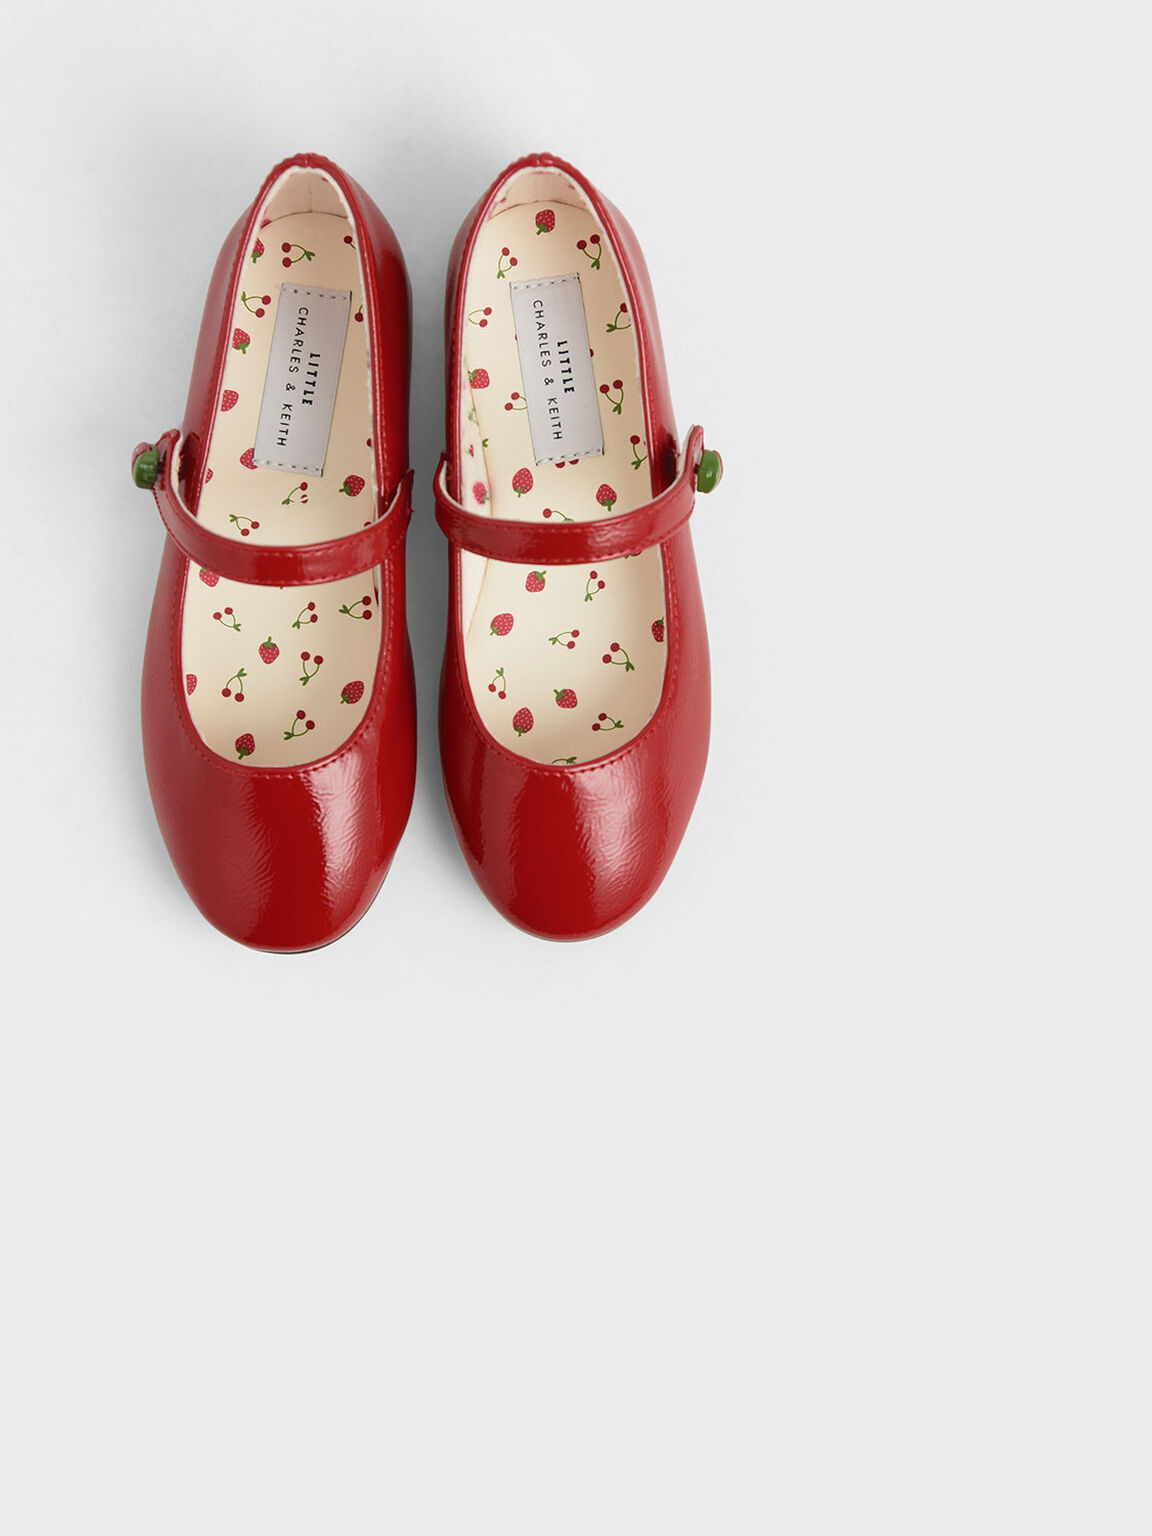 Girls' Strawberry Wrinkled Patent Mary Jane Flats, Red, hi-res